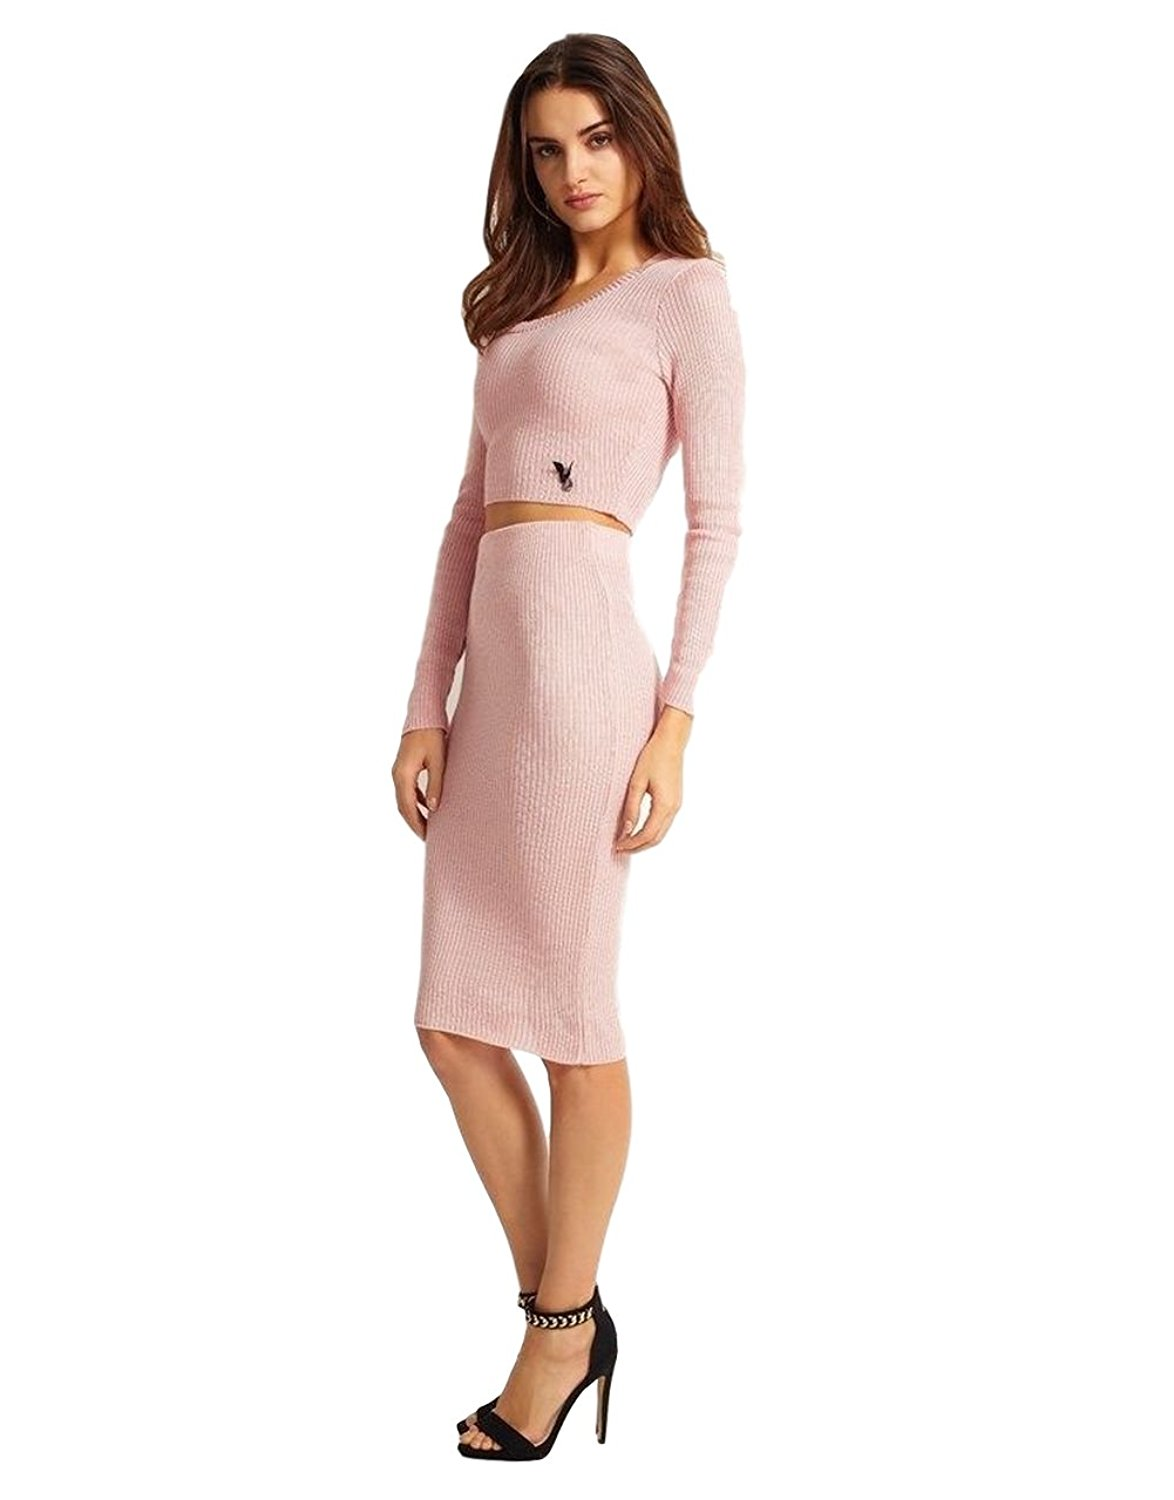 Ex Lipsy Pink High Waist Ribbed Knit Bodycon Pencil Skirt (US 8) at Amazon Women's Clothing store: